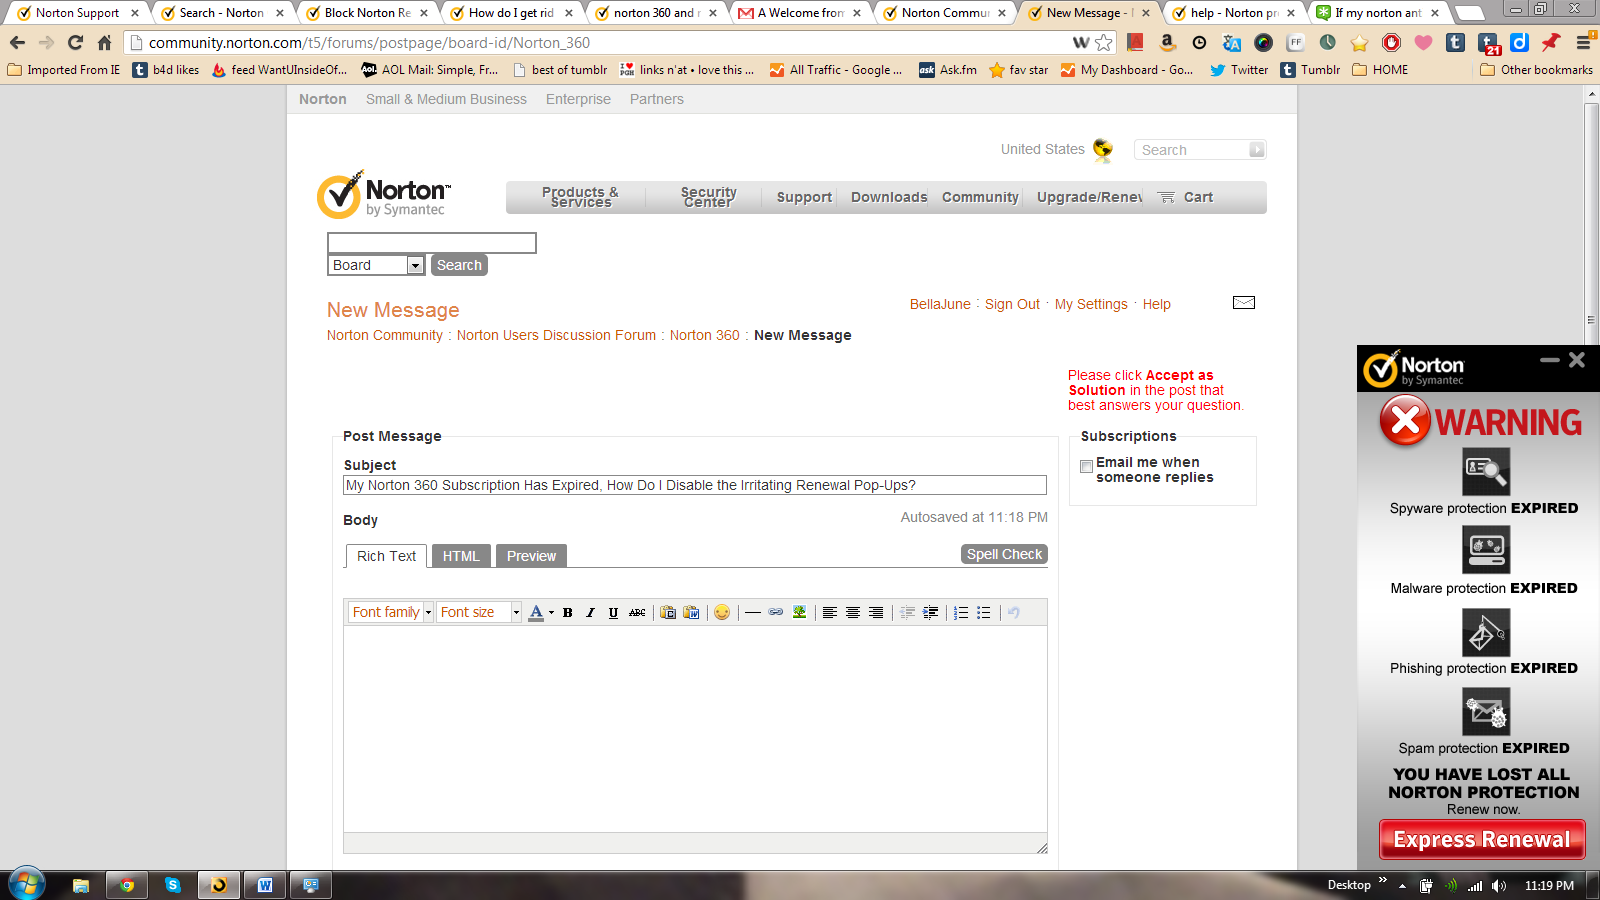 My Norton 360 Subscription Has Expired, How Do I Disable the